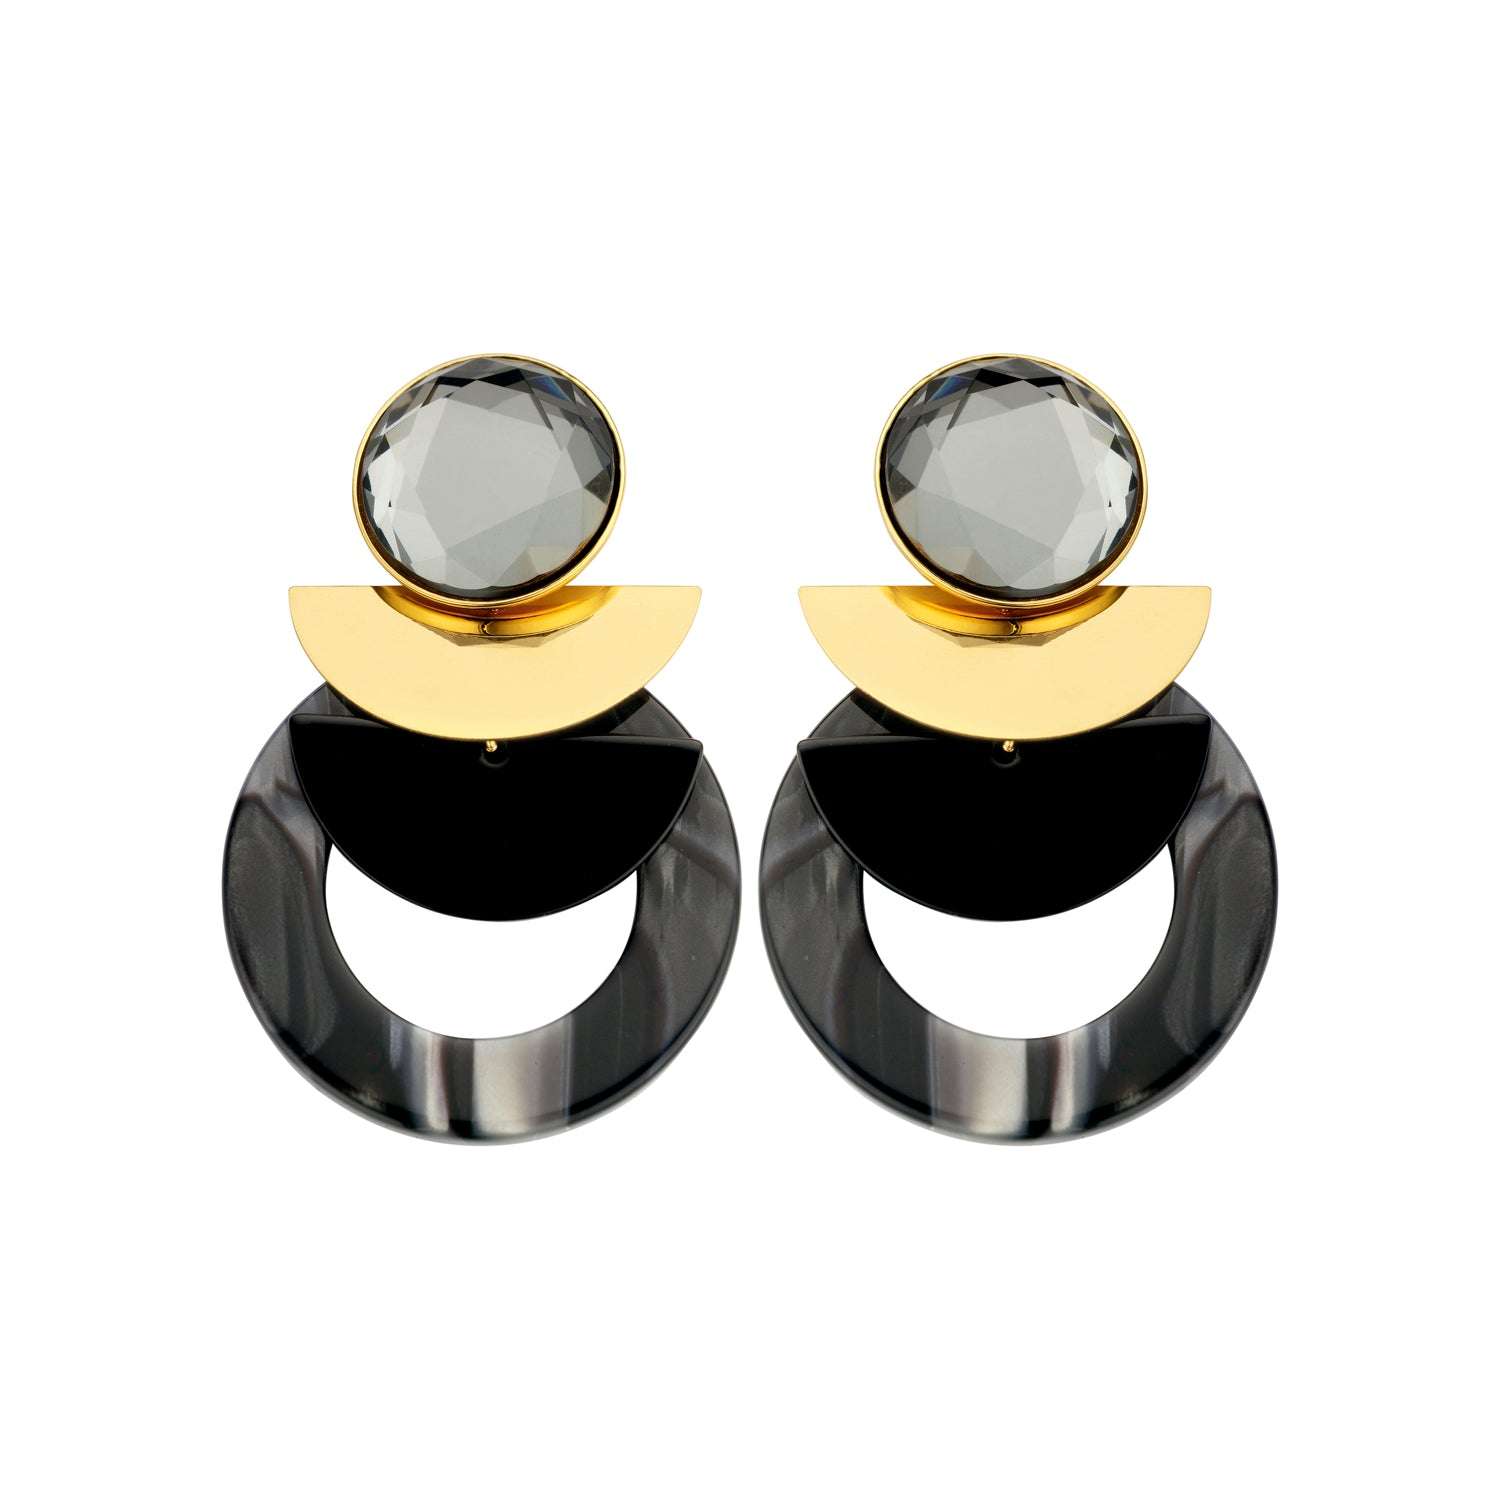 Sonia statement anthracite earrings